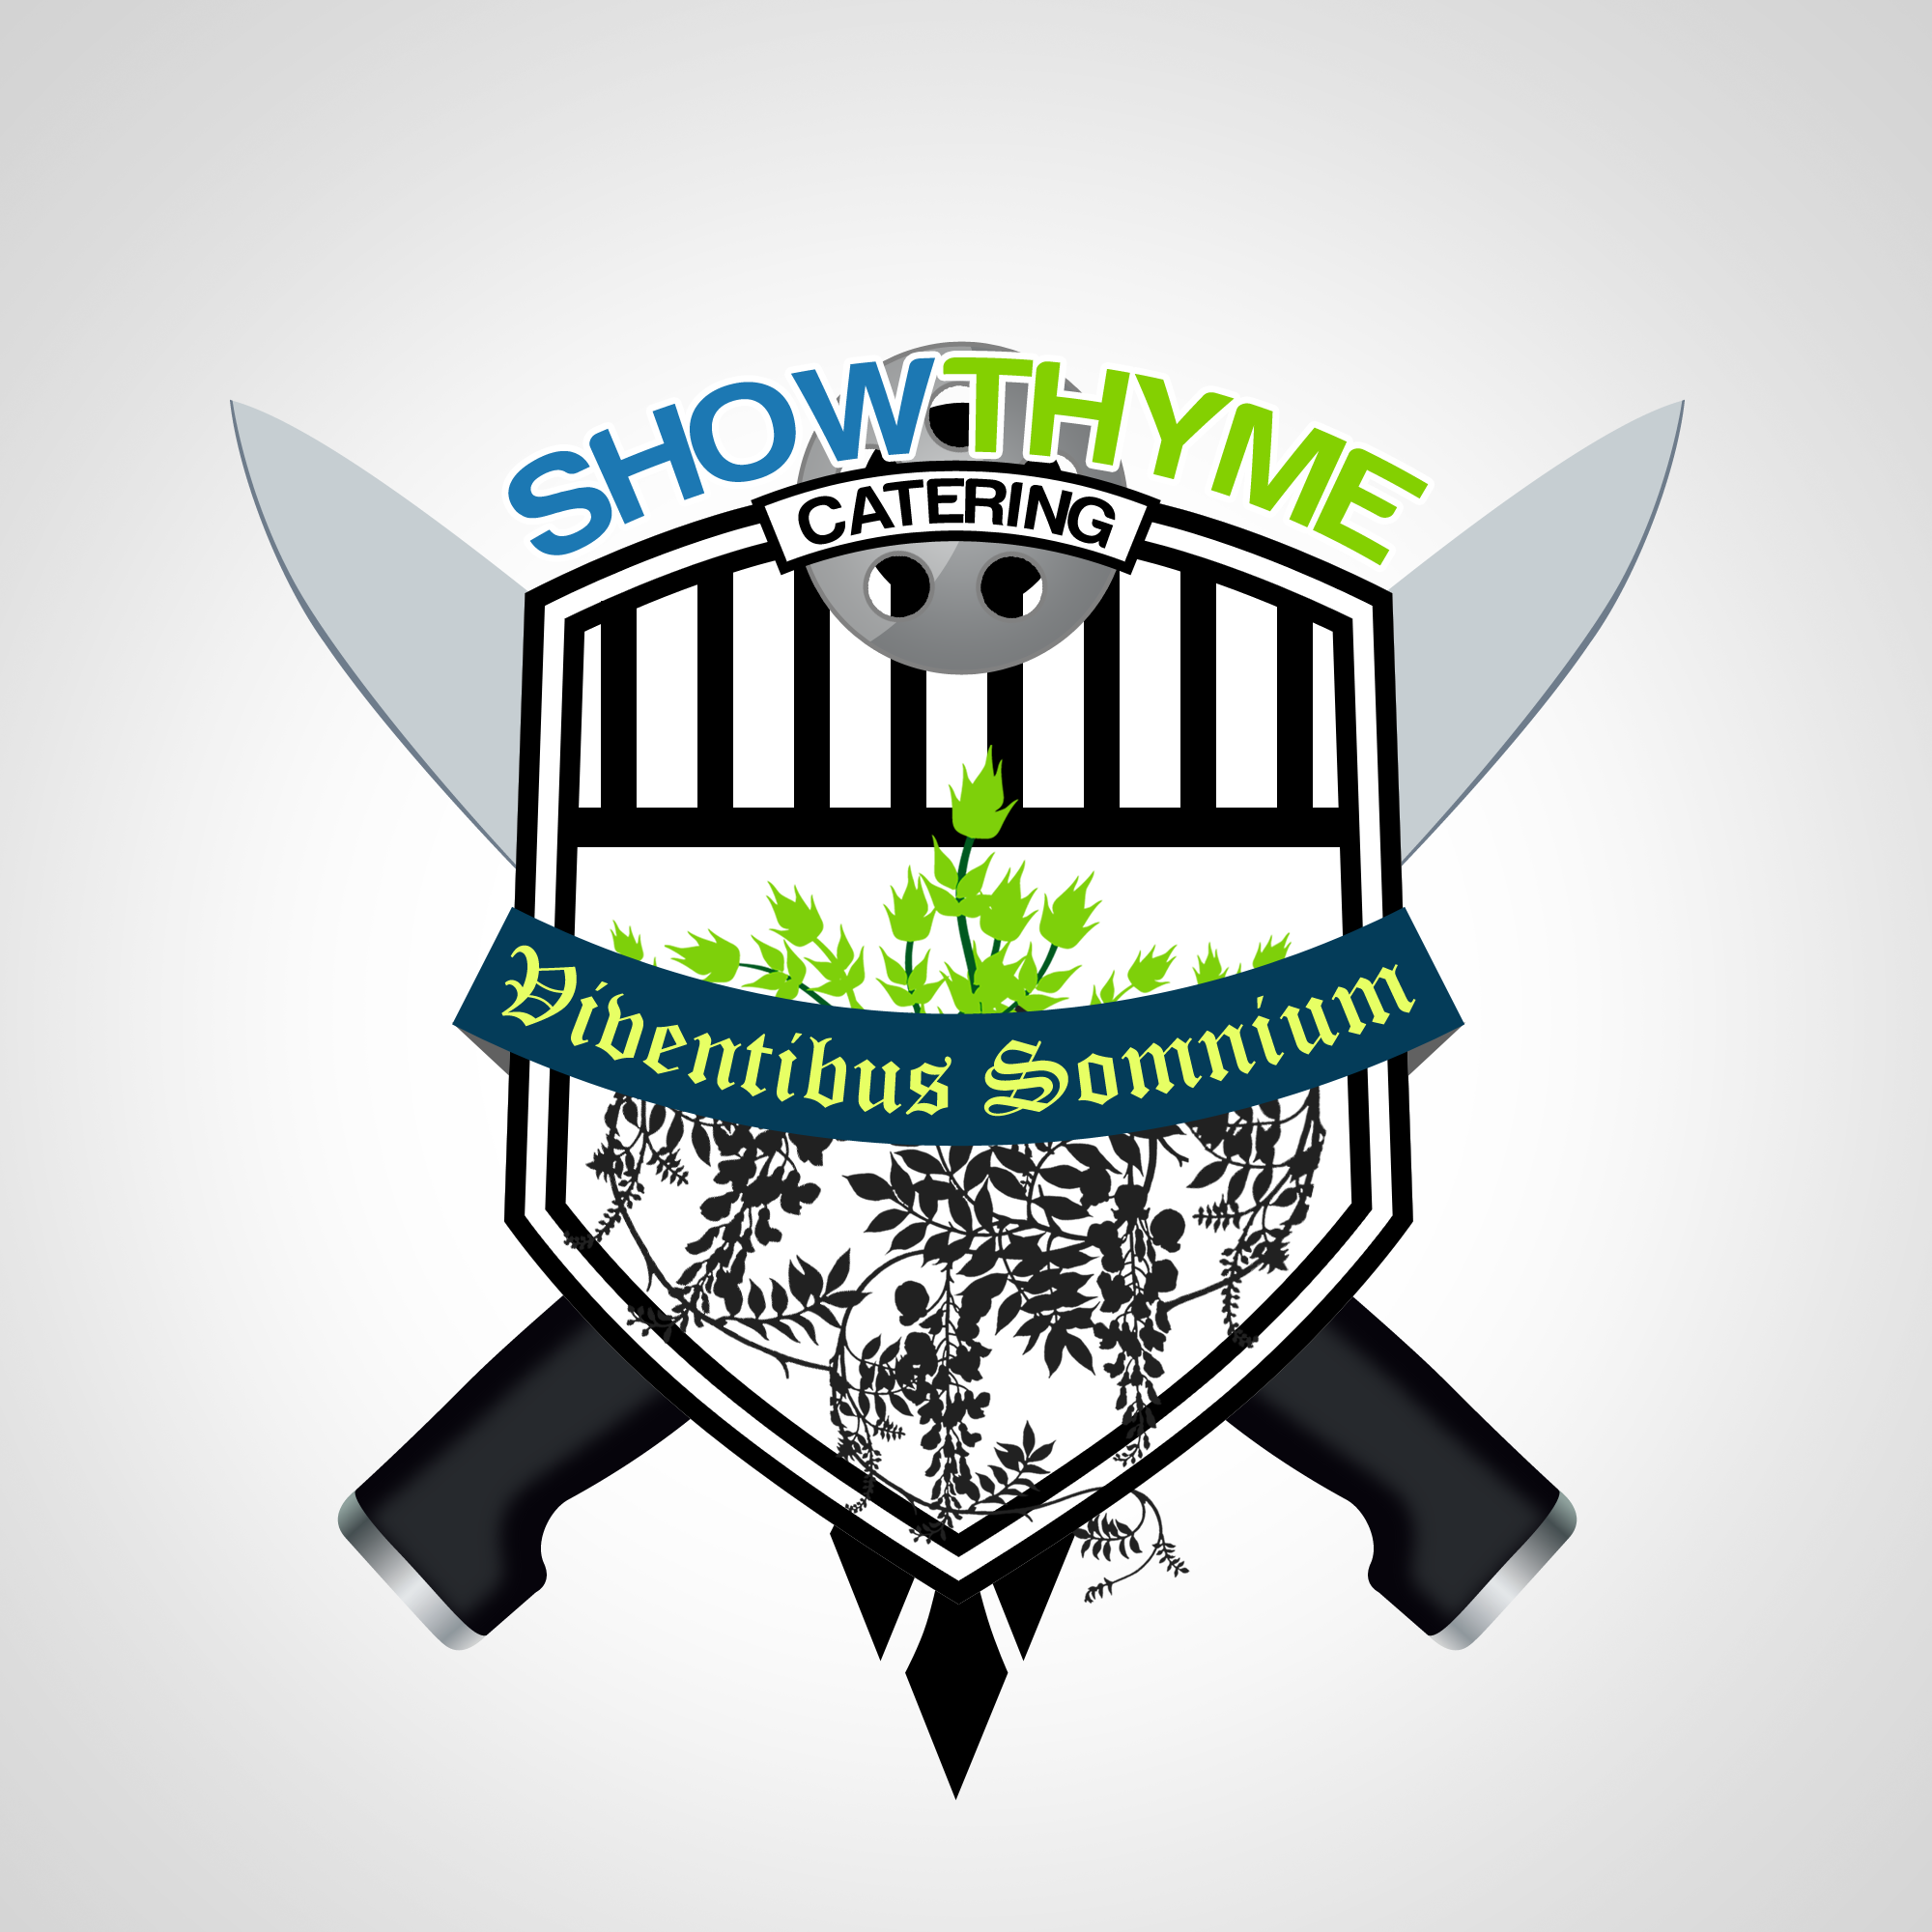 Logo Design by Kenneth Joel - Entry No. 34 in the Logo Design Contest Showthyme Catering Logo Design.